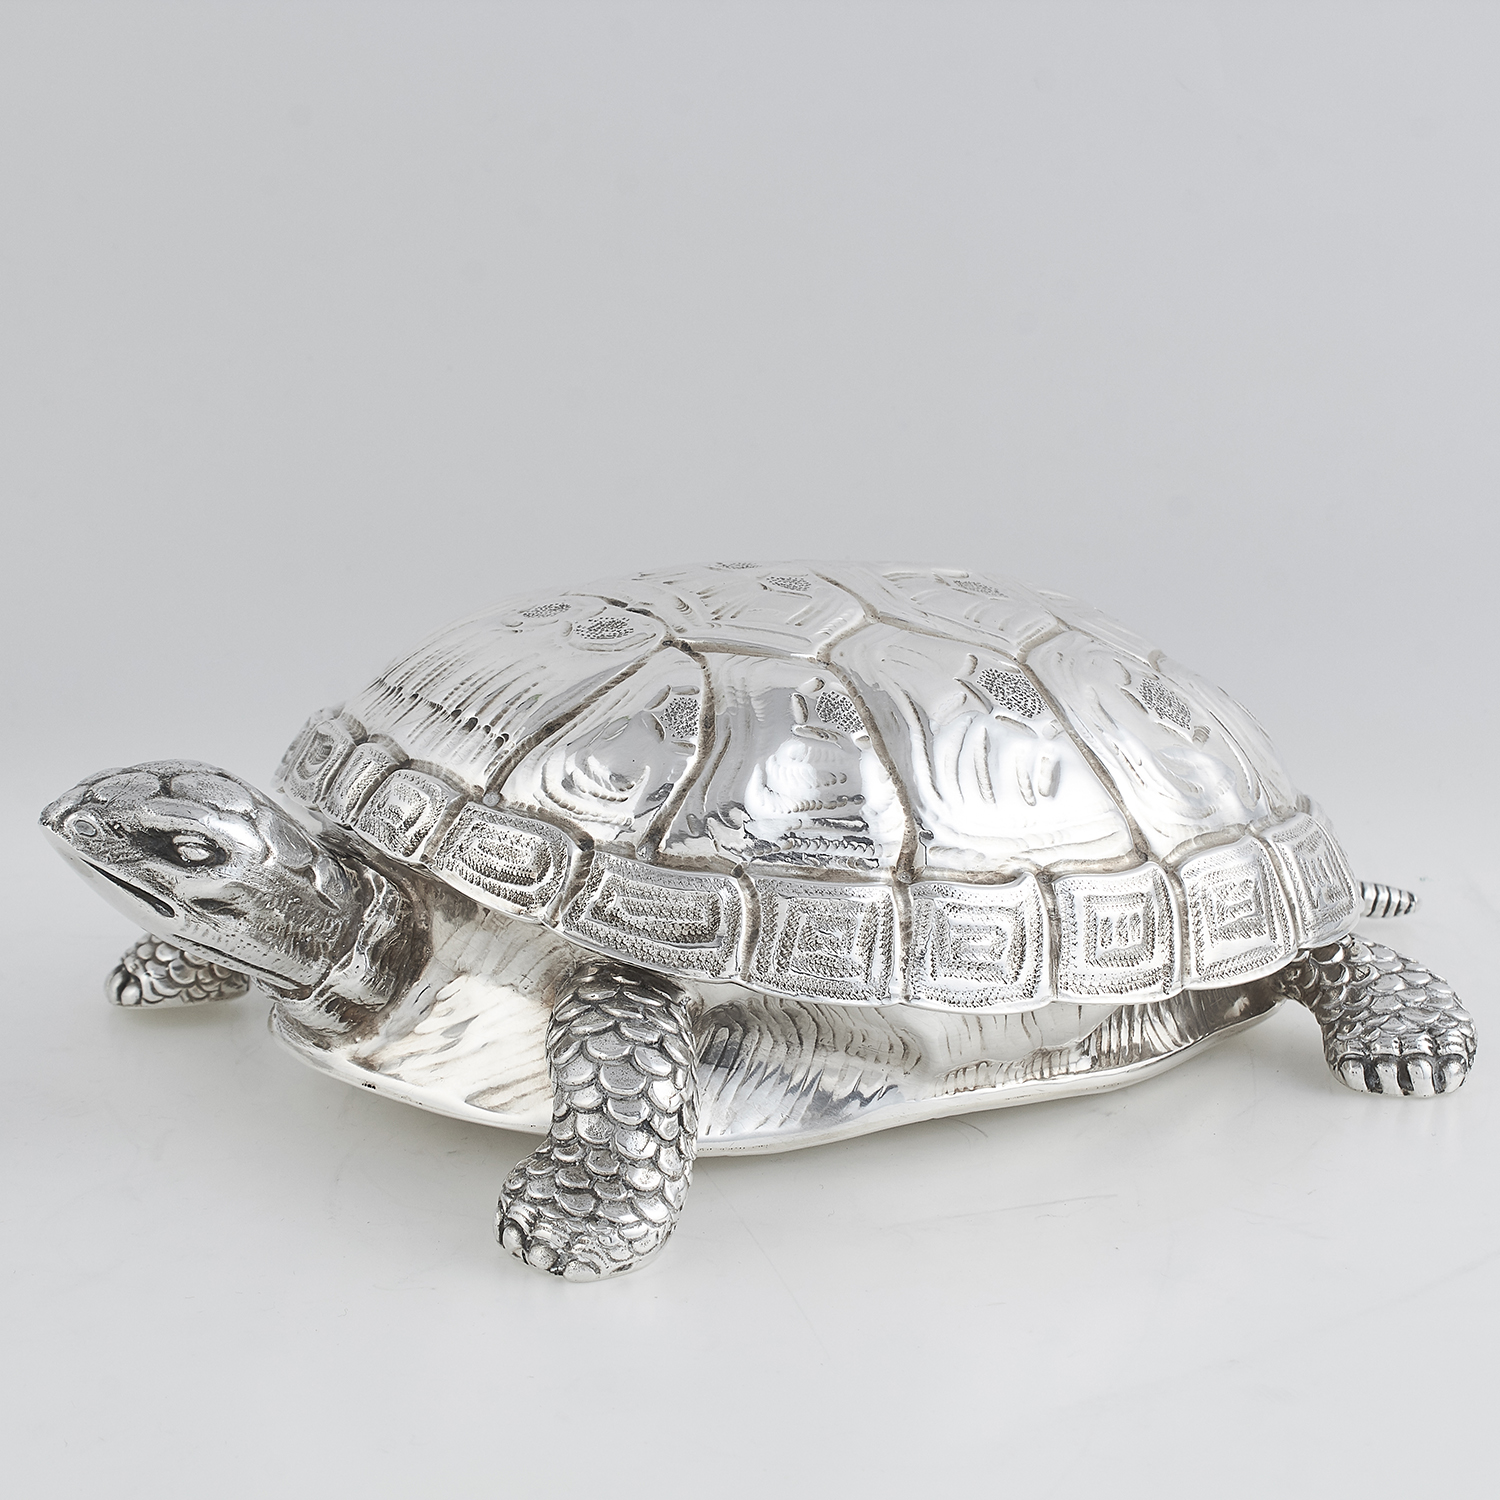 Los 54 - VINTAGE ITALIAN SILVER TURTLE BOX, FASANO OF TURIN, CIRCA 1960 designed as the body of a turtle, its